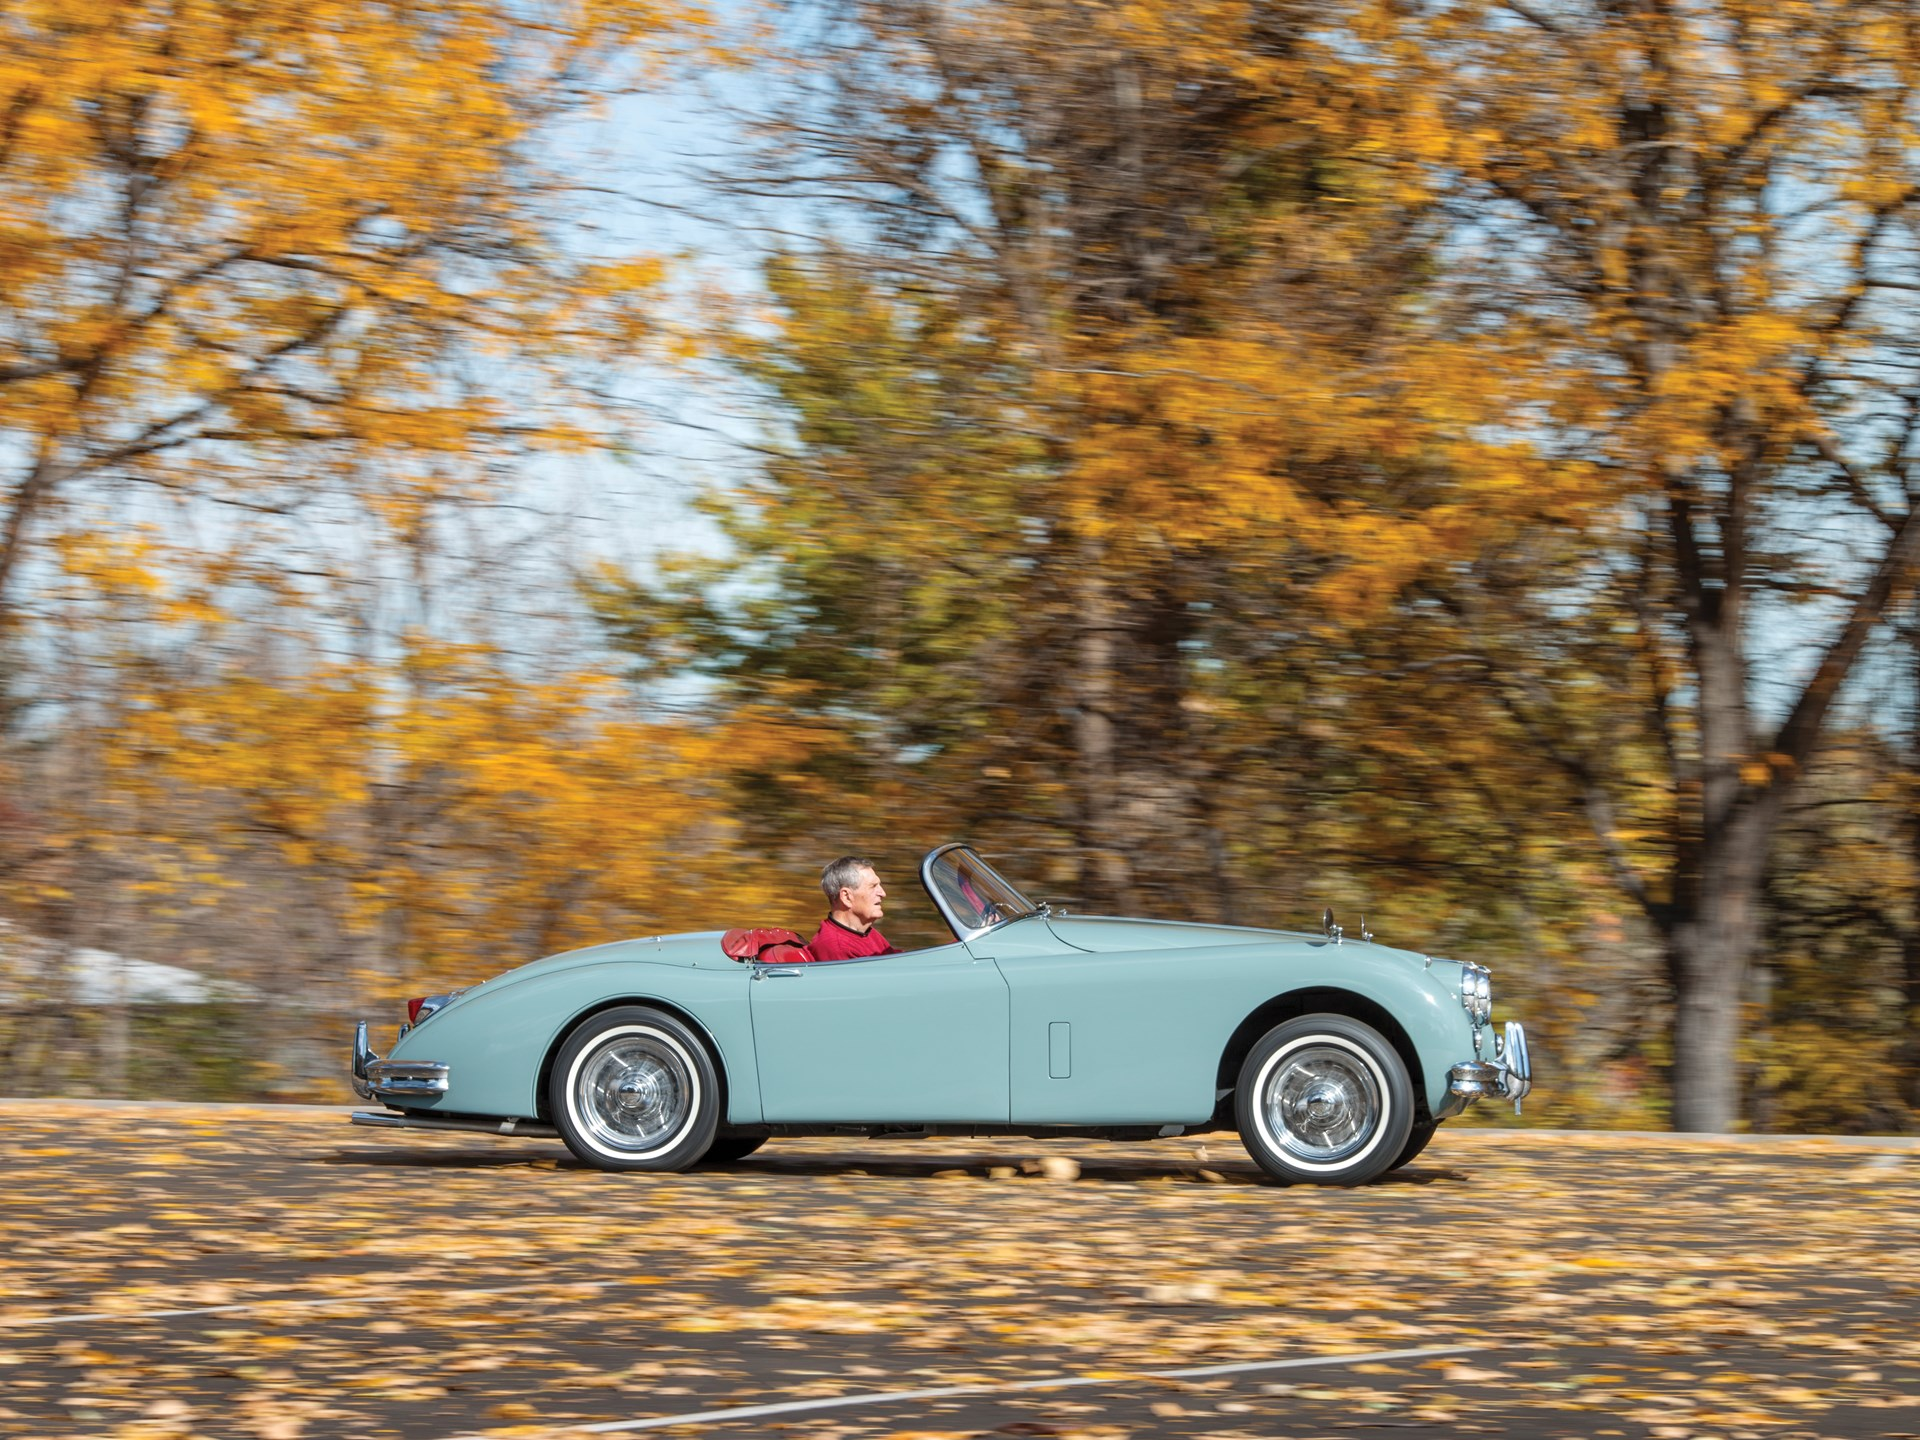 1958 Jaguar XK 150 3.4 Roadster